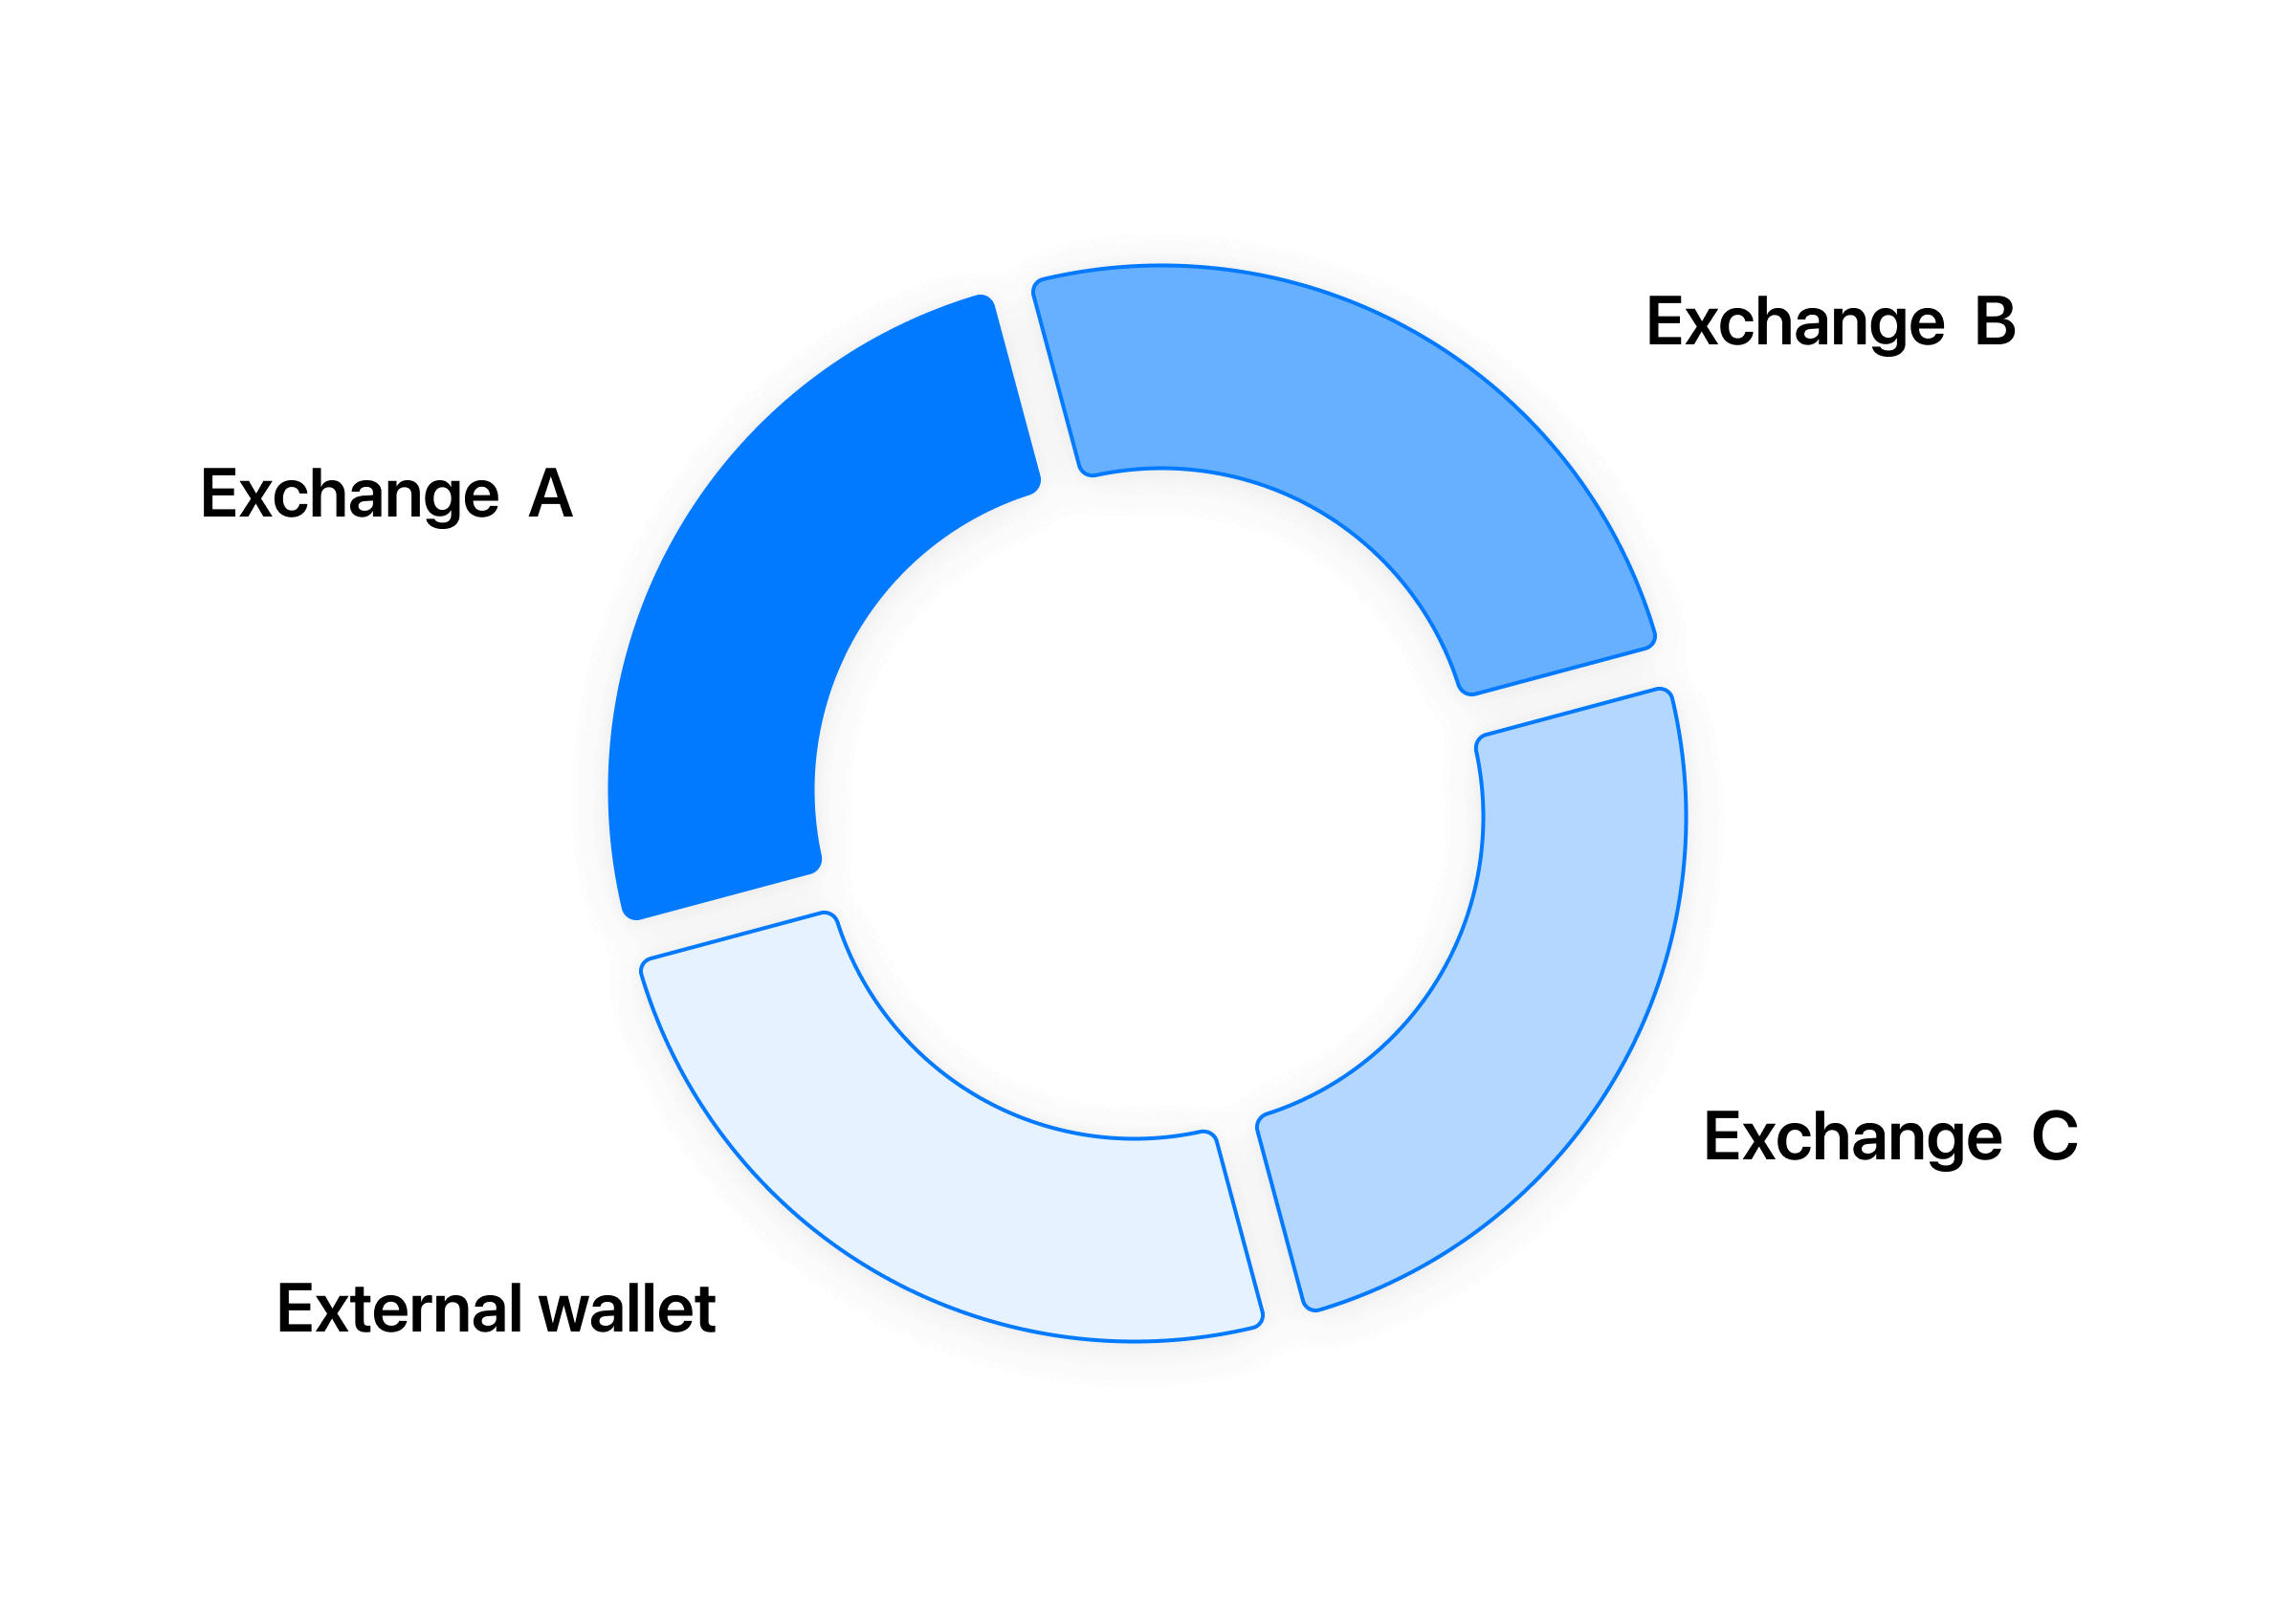 Diversify assets across different exchanges.